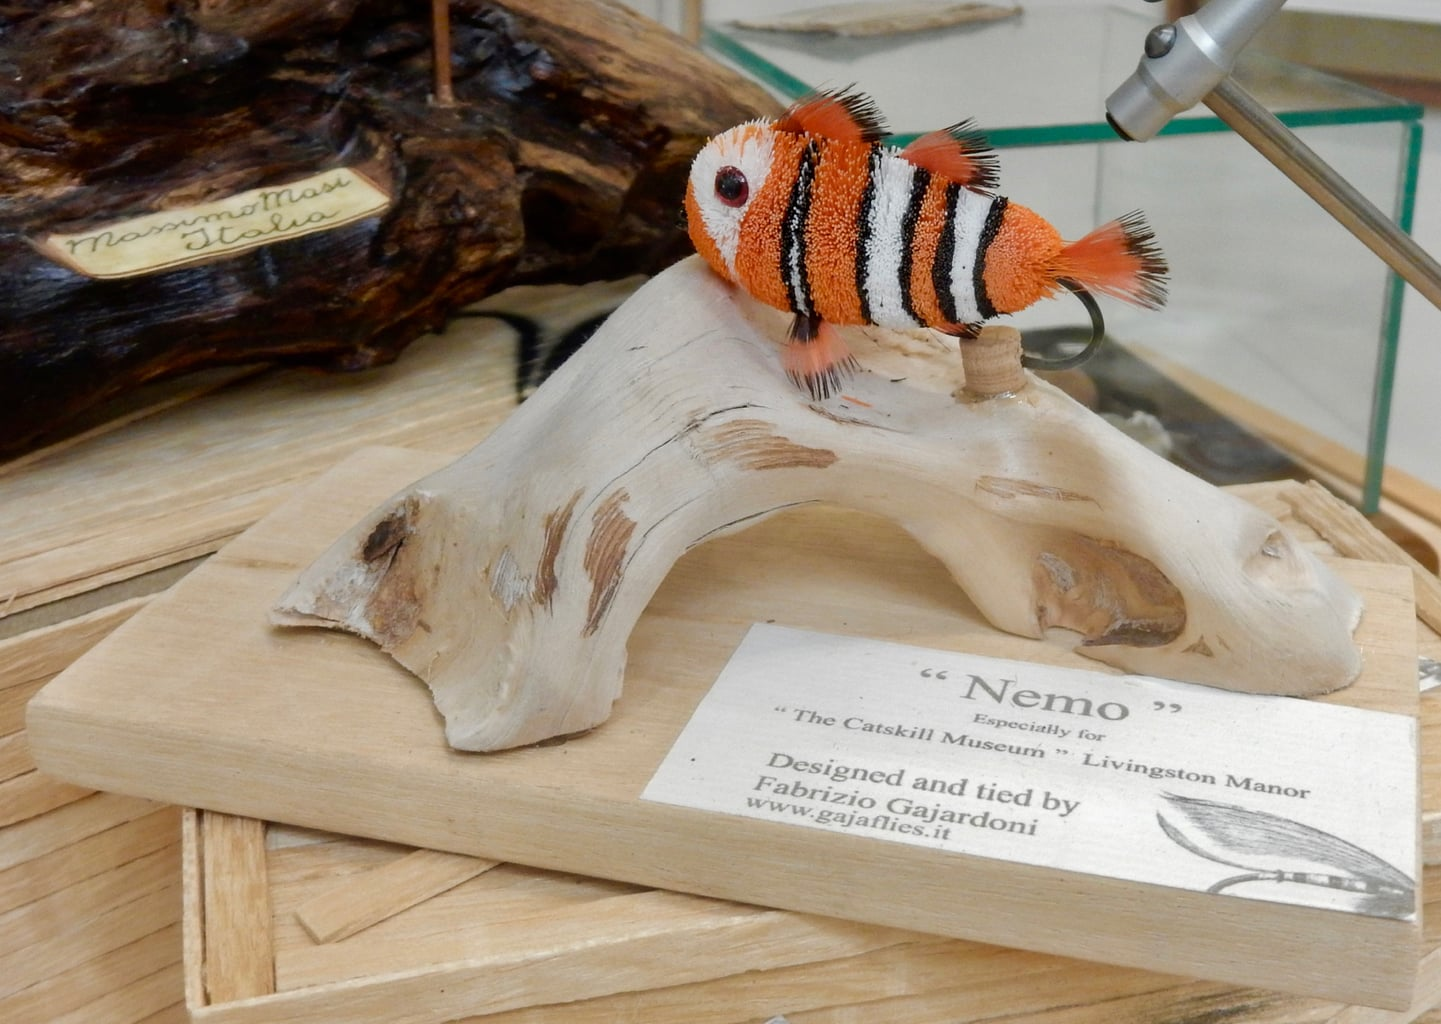 Nemo Fly at Catskill Flyfishing Museum, Livingston Manor NY